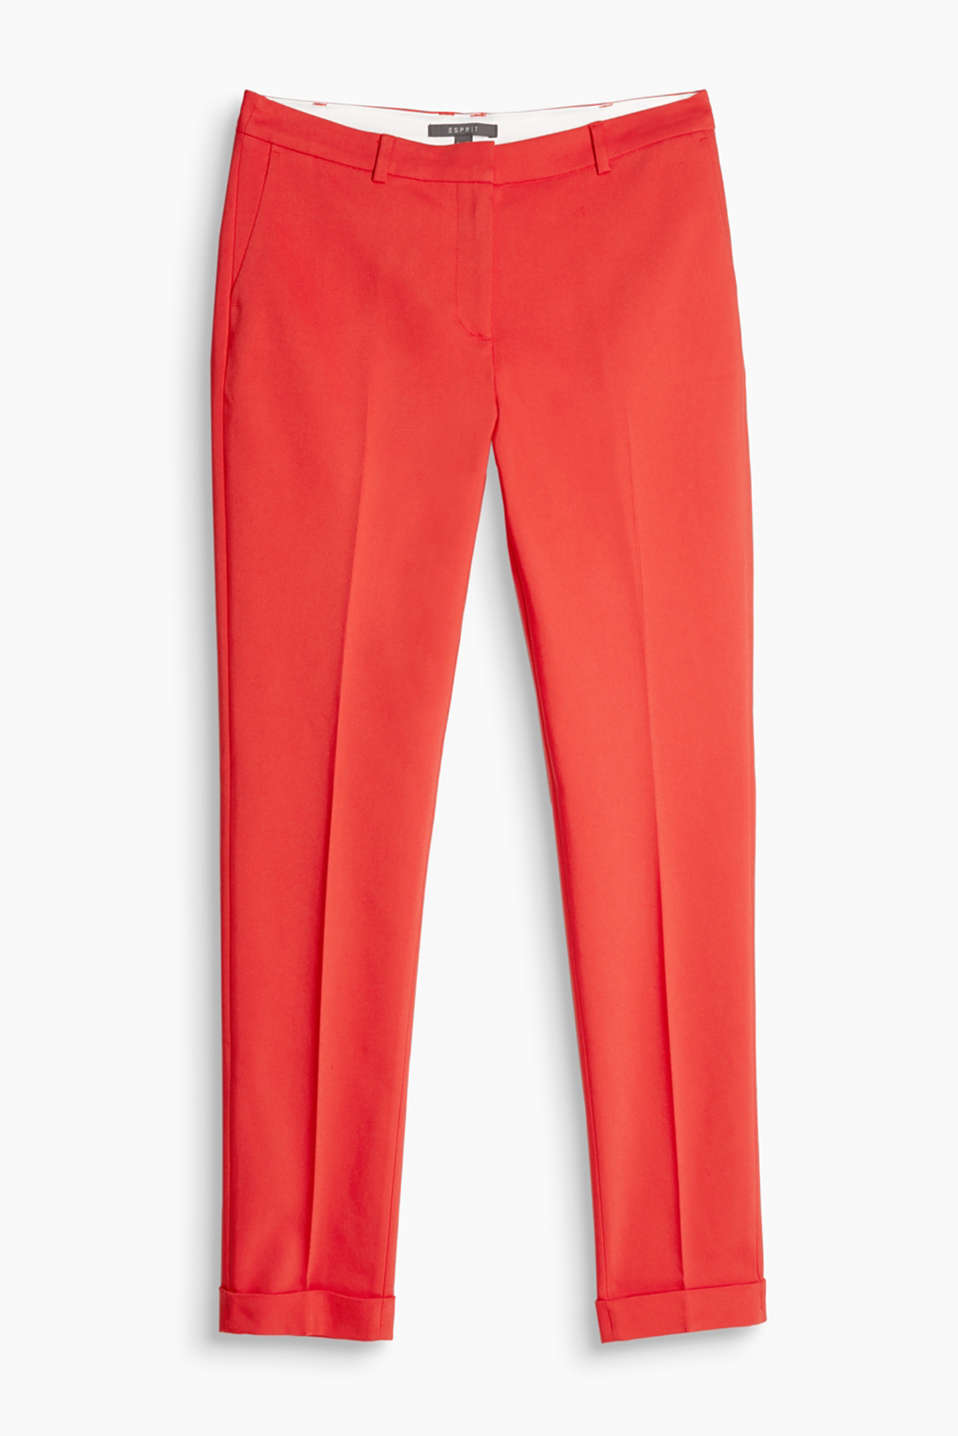 Double weave stretch trousers with turn-up hems